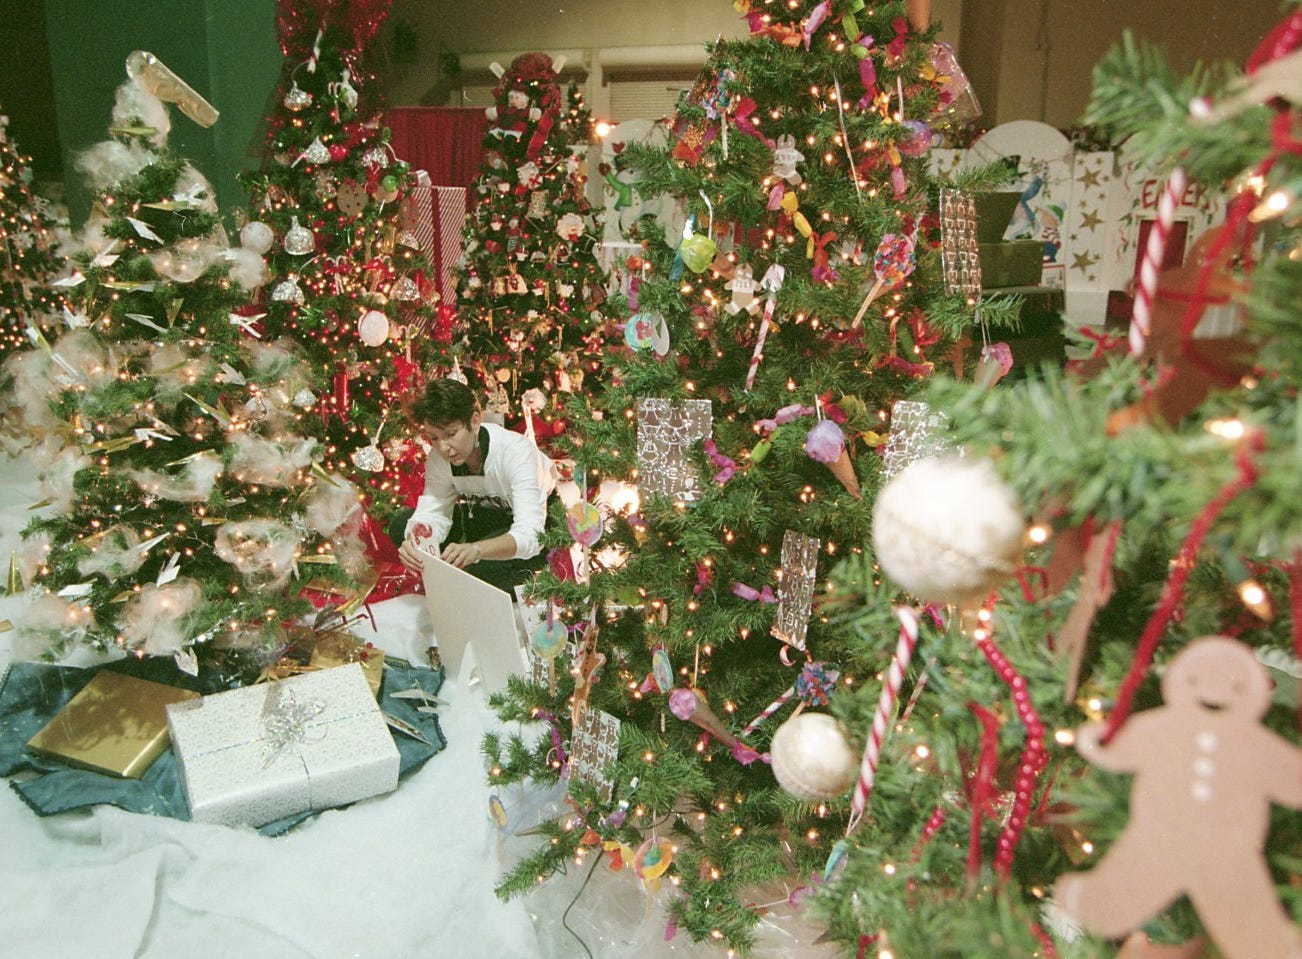 Sandy McKelvy, co-shair of Fantasy of Trees, adjust as sign among the many decorated trees, November, 1997.